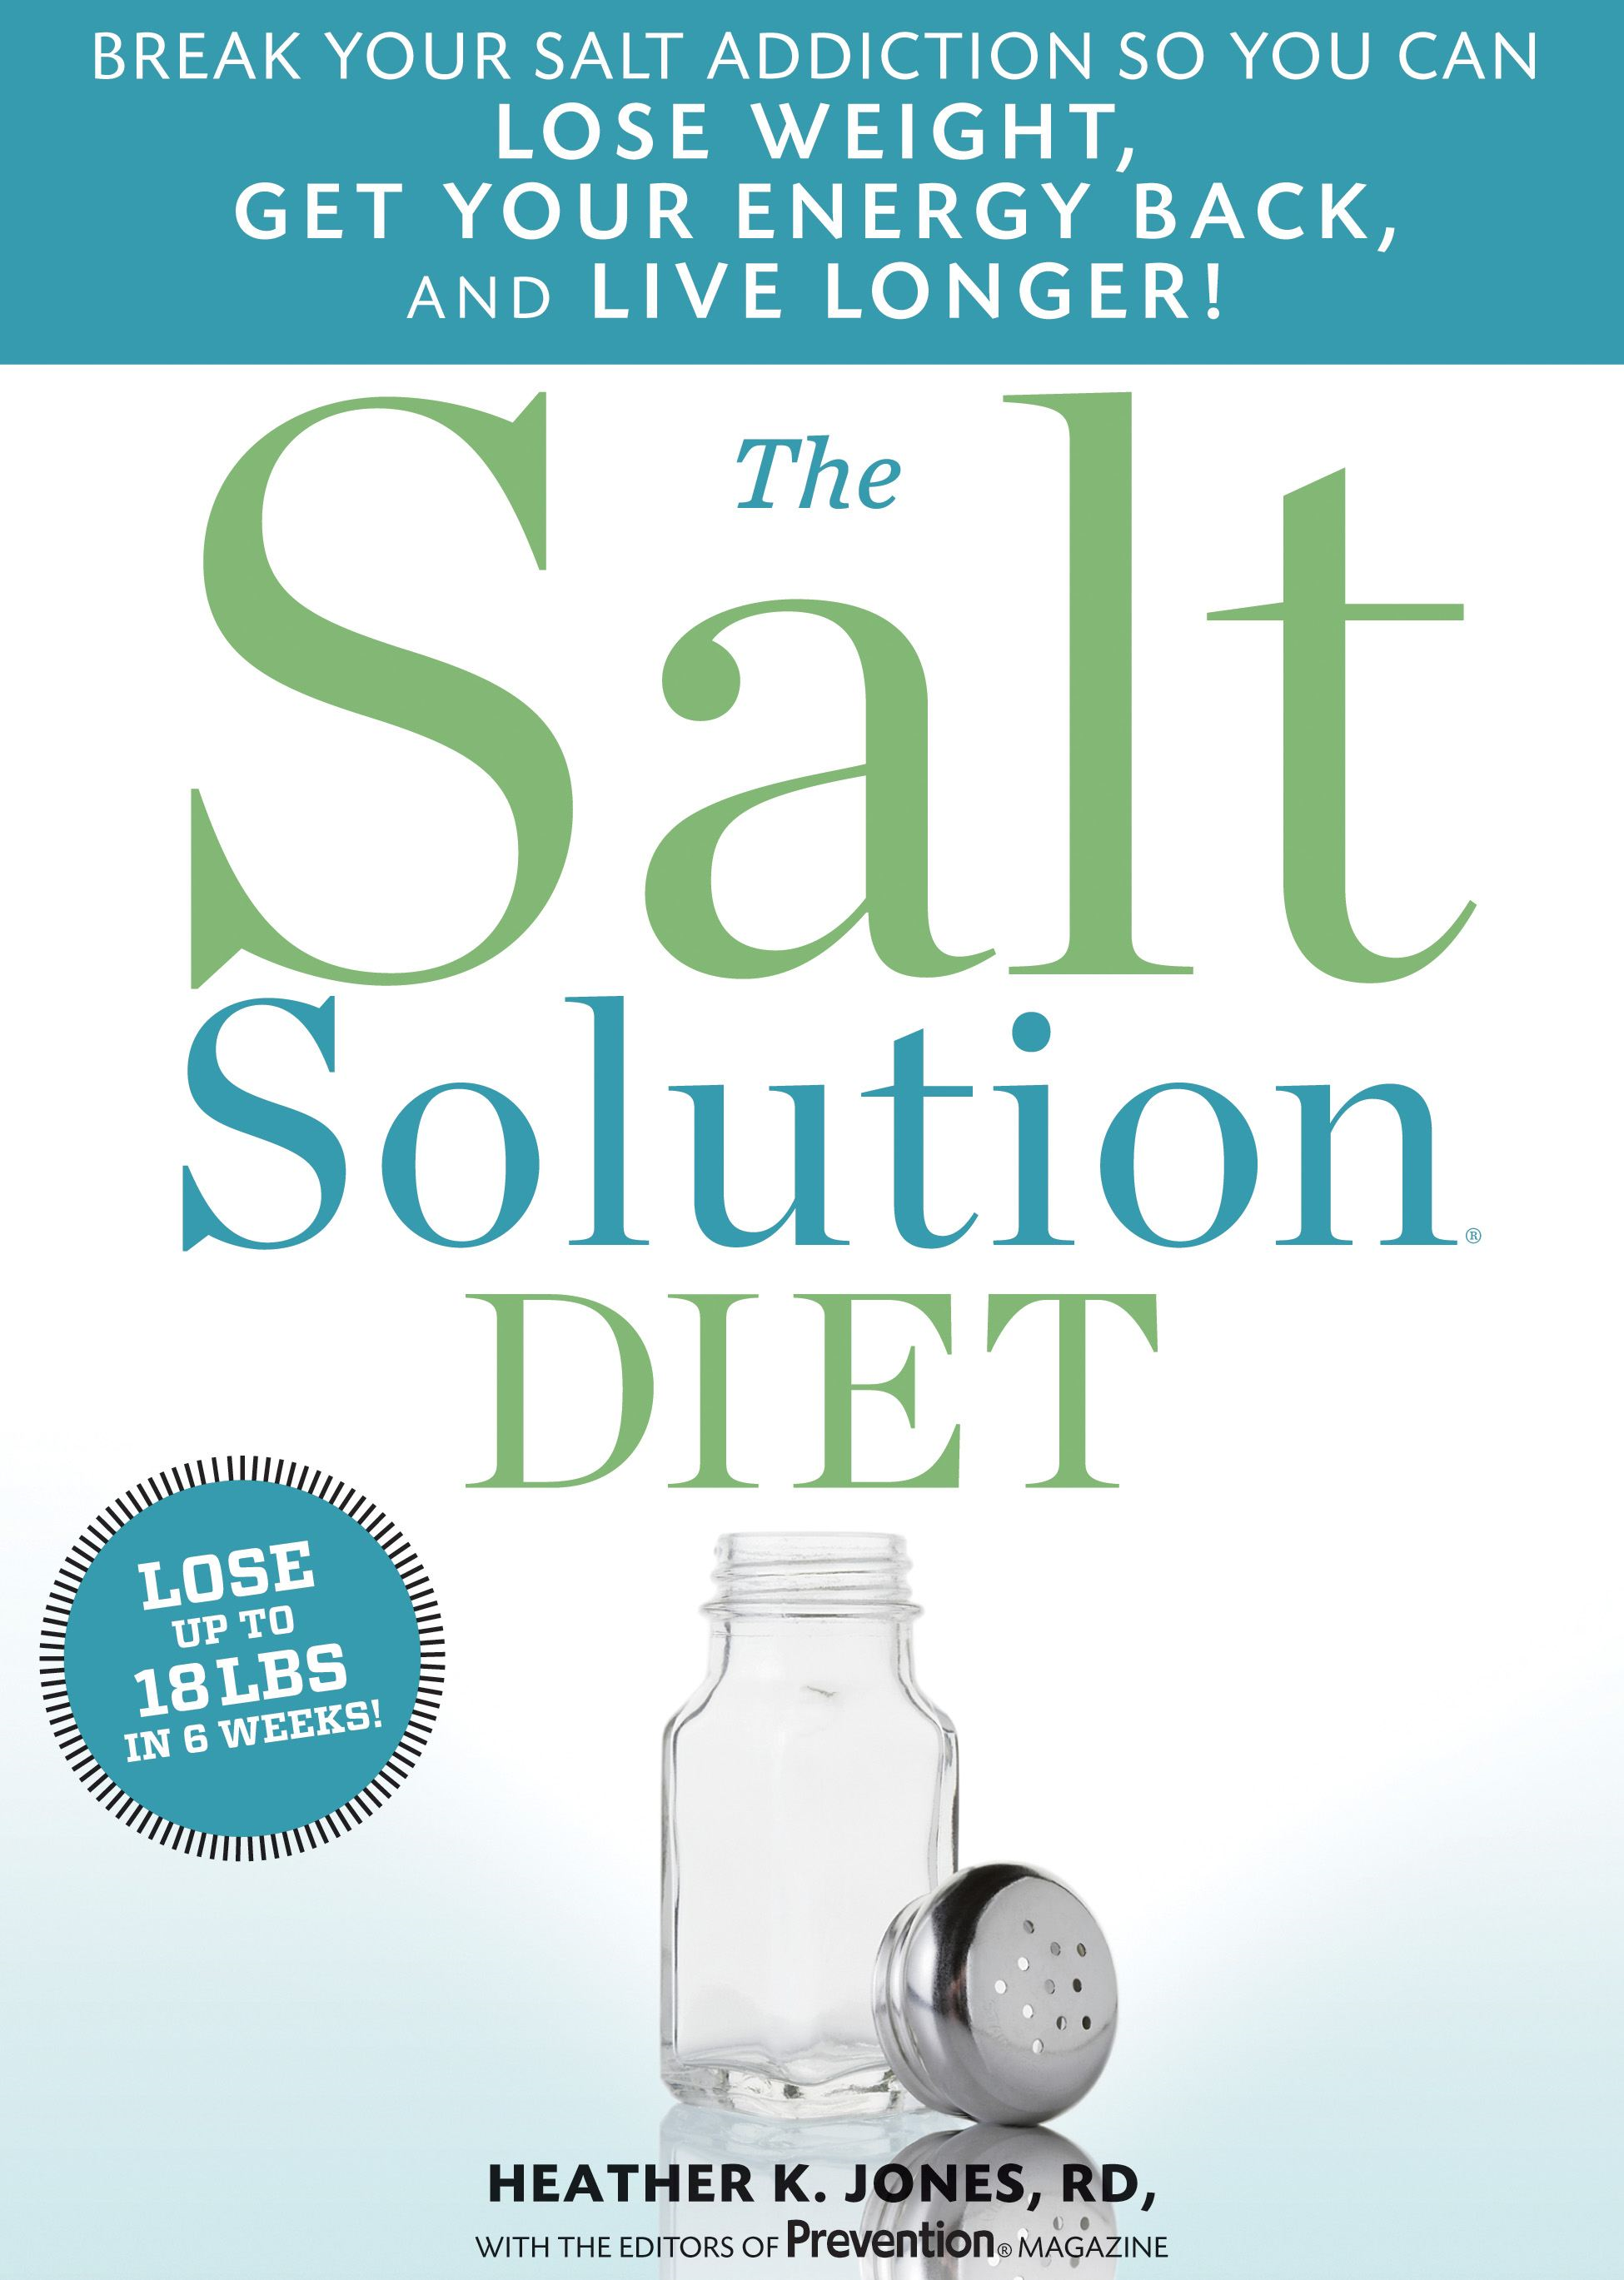 The Salt Solution Diet: Break your salt addiction so you can lose weight get your energy back and live longer! By: Heather K. Jones,The Editors of Prevention